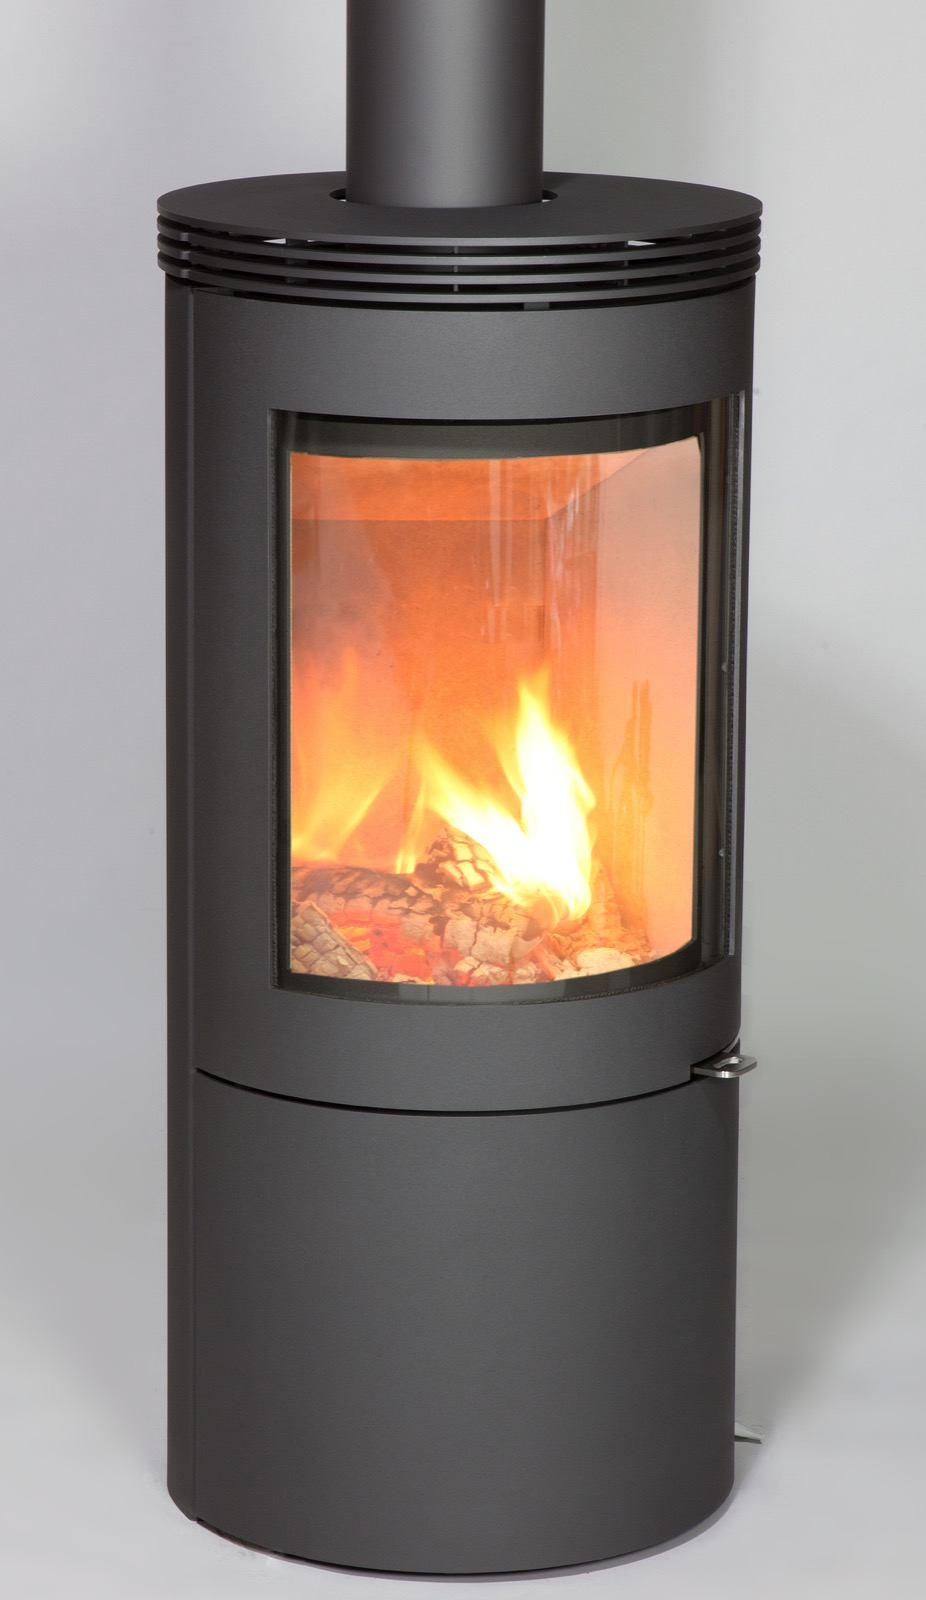 Westfire Uniq 27 Convection Wood Burning Stove In Grey